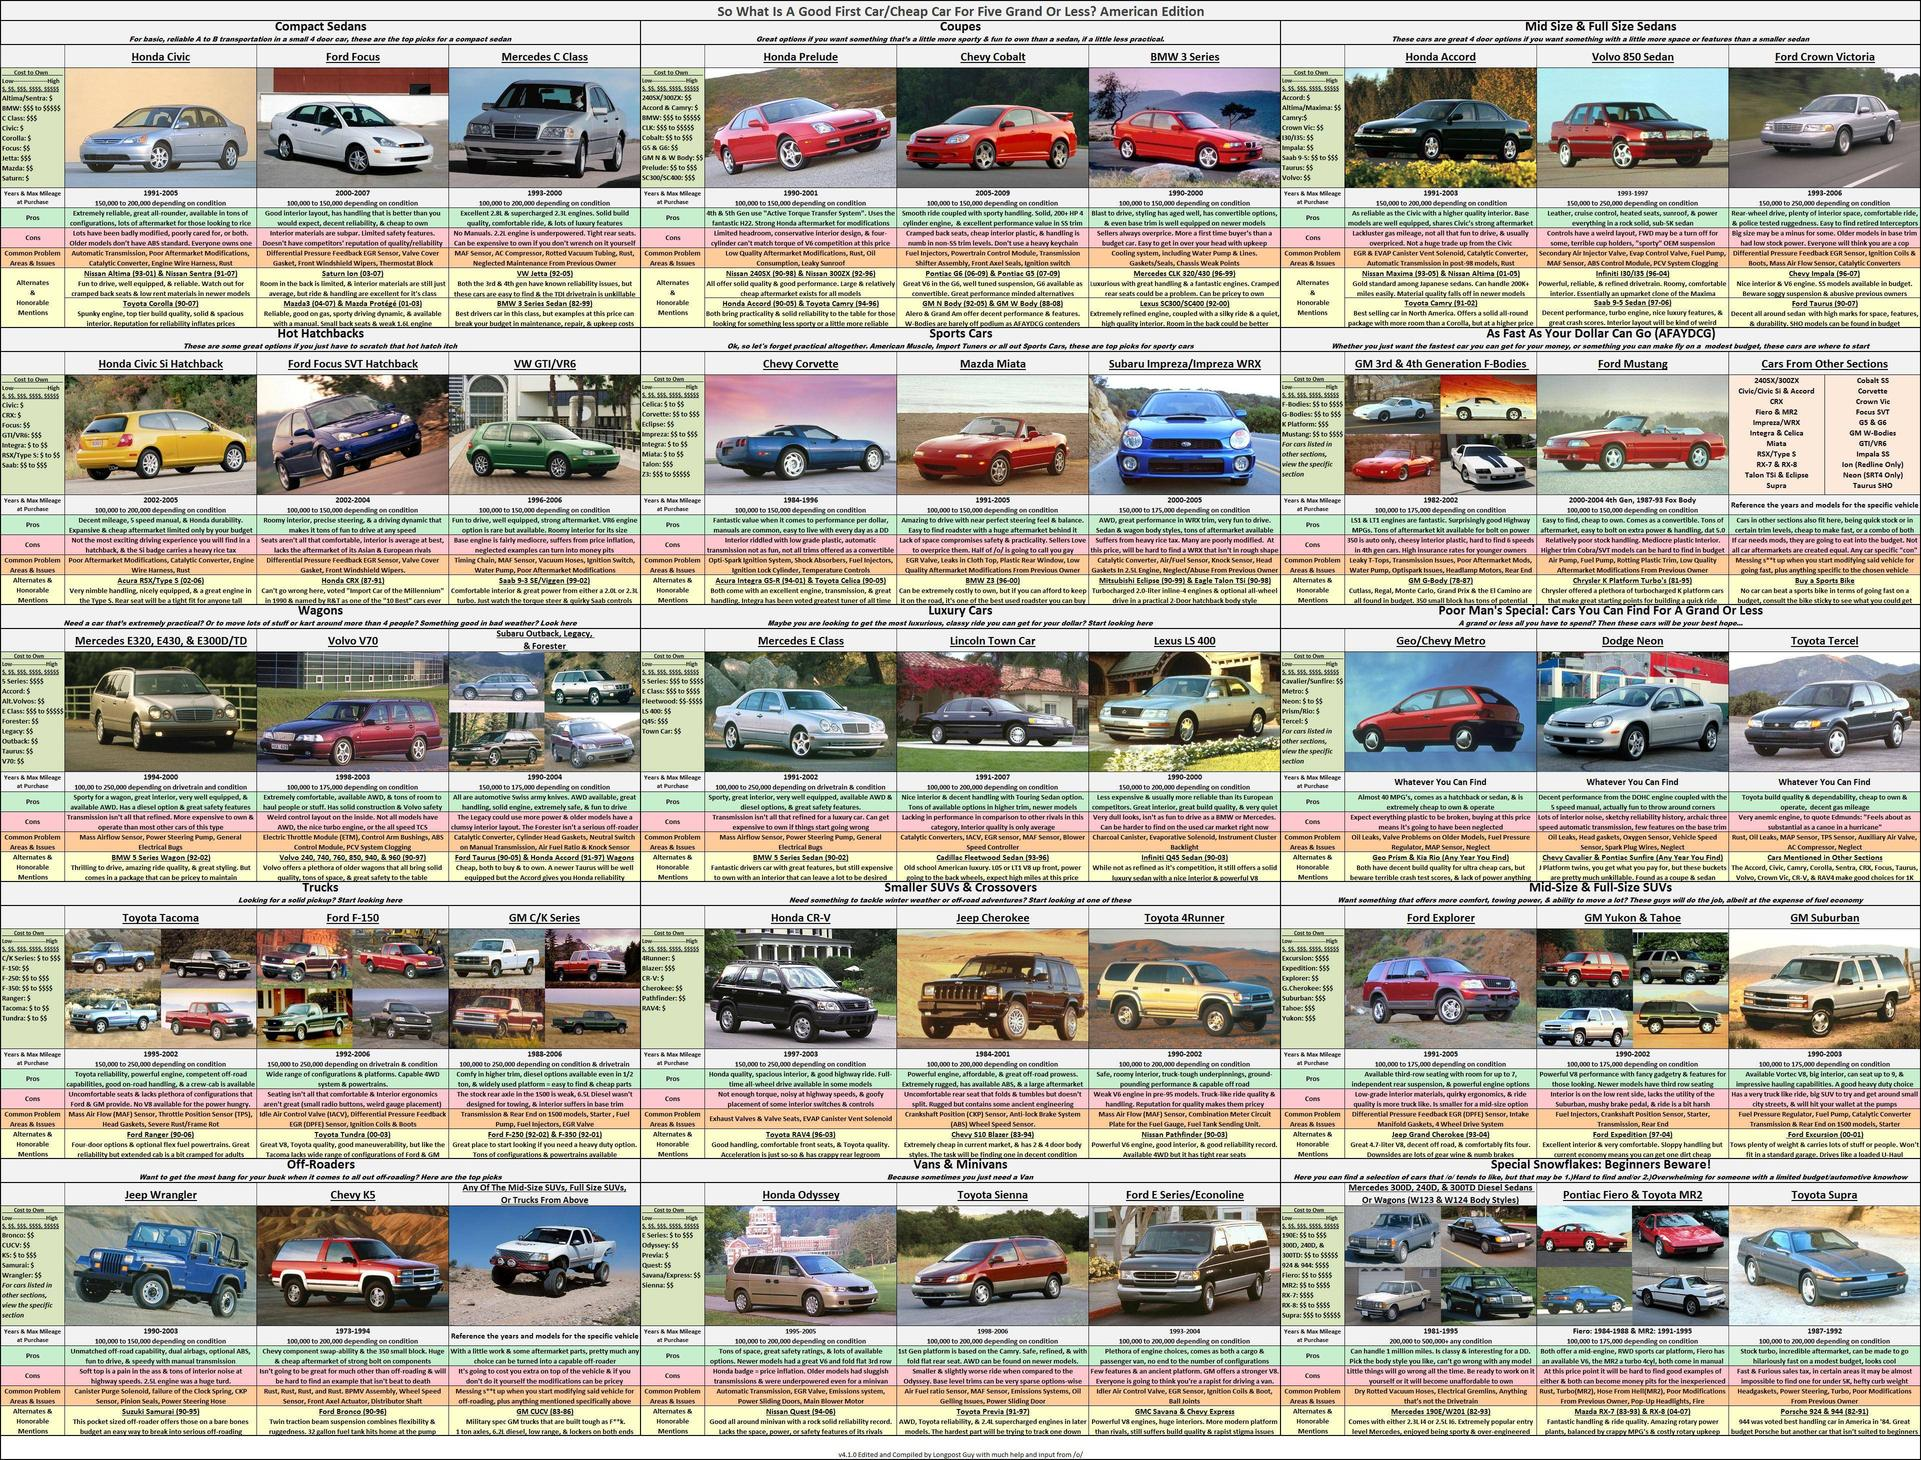 Used Car Buying Guide Lovely the Updated $5k Used Car Ing Chart Thanks to 4chan X Post R